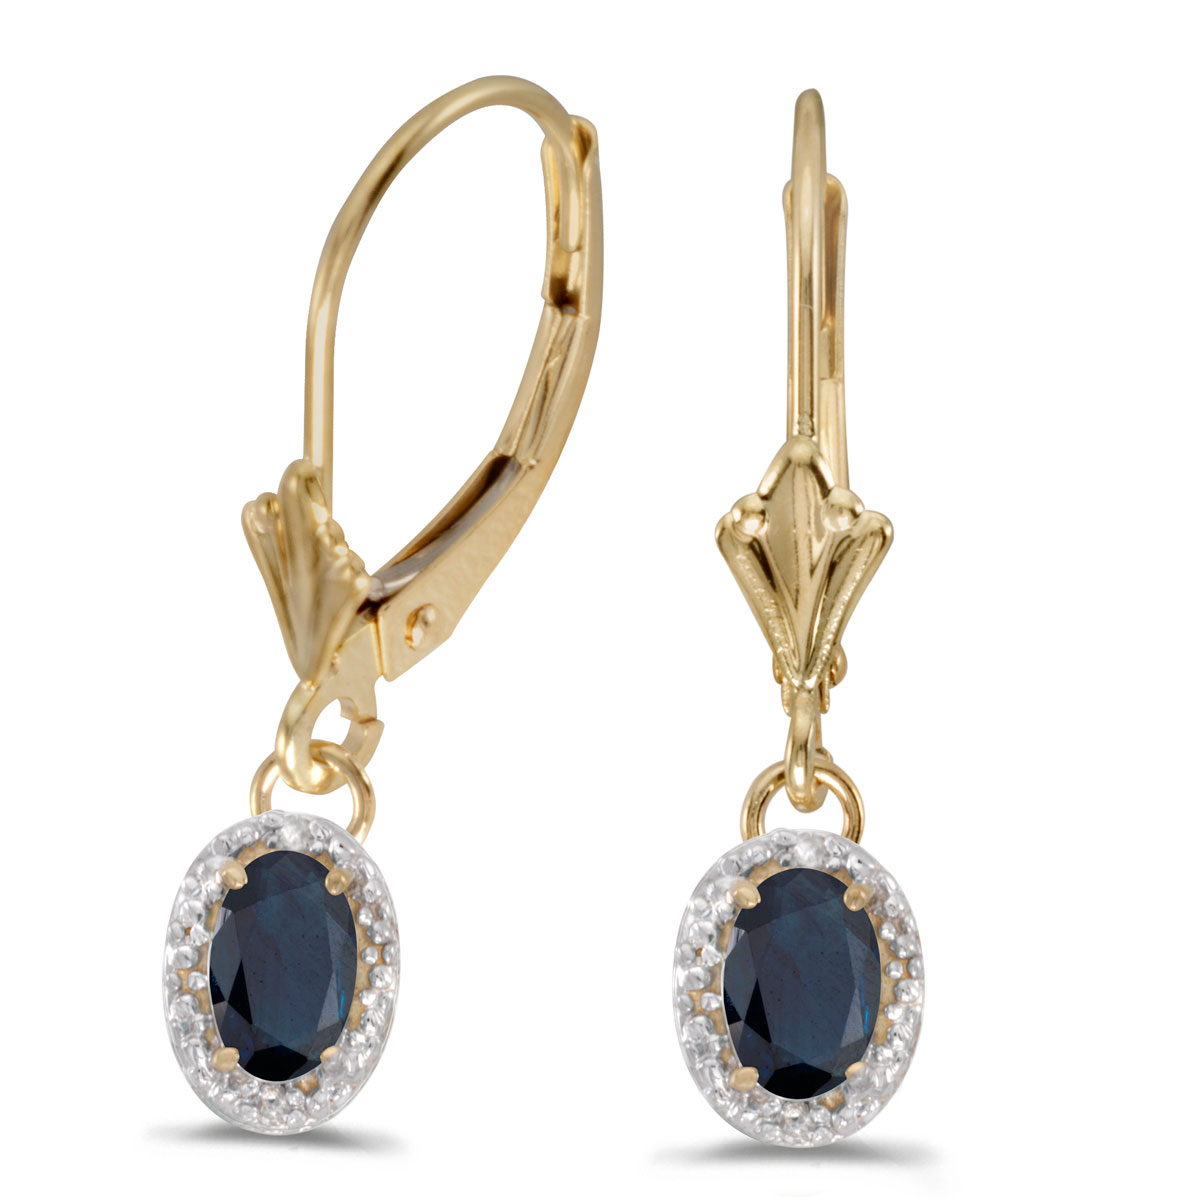 Beautiful 10k yellow gold leverback earrings with bold 6x4 mm sapphires complemented with bright ...